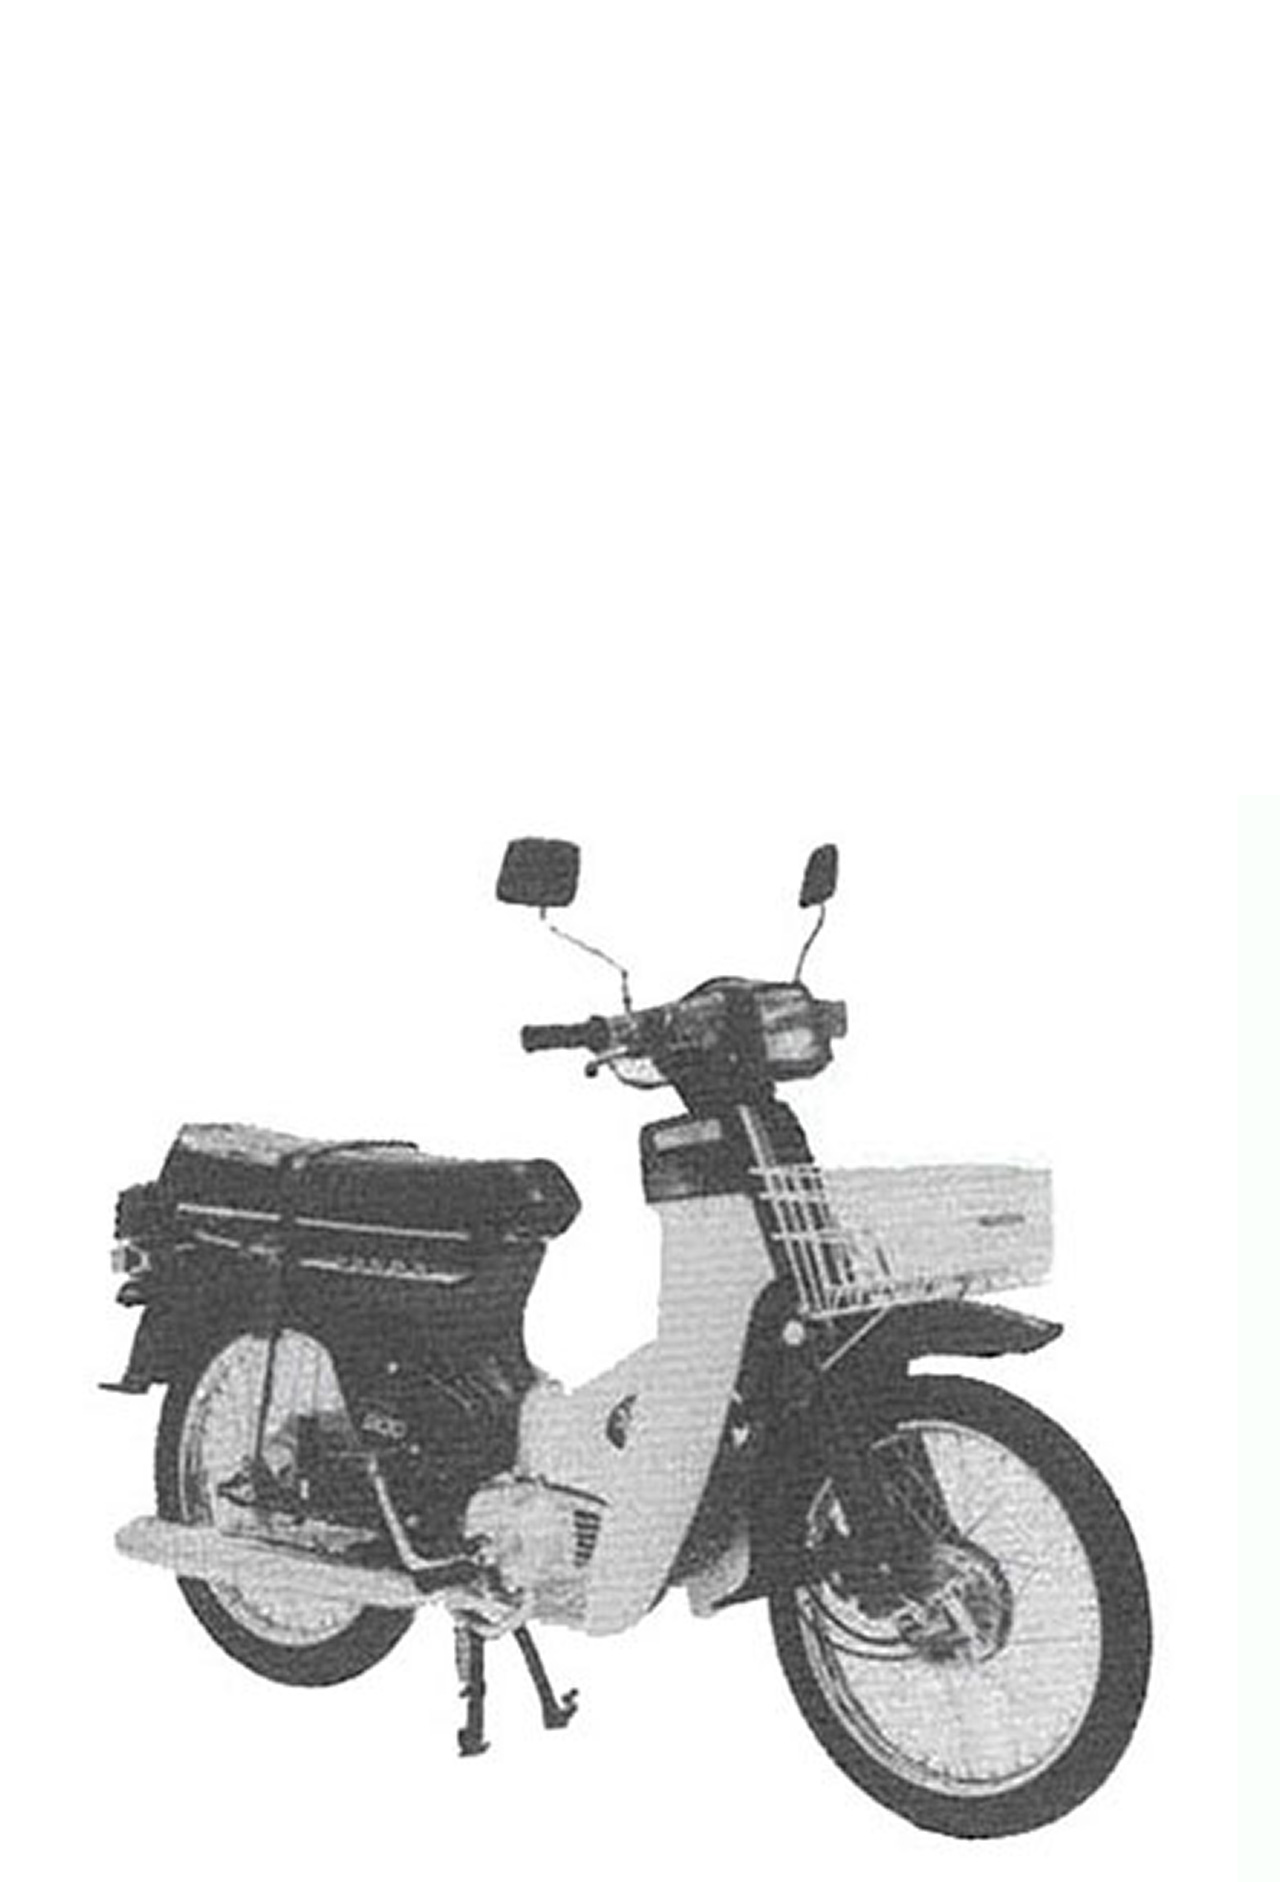 Honda global story vol3 the c7090 produced by thai honda manufacturing in the 1980s famed thai singer thecheapjerseys Choice Image